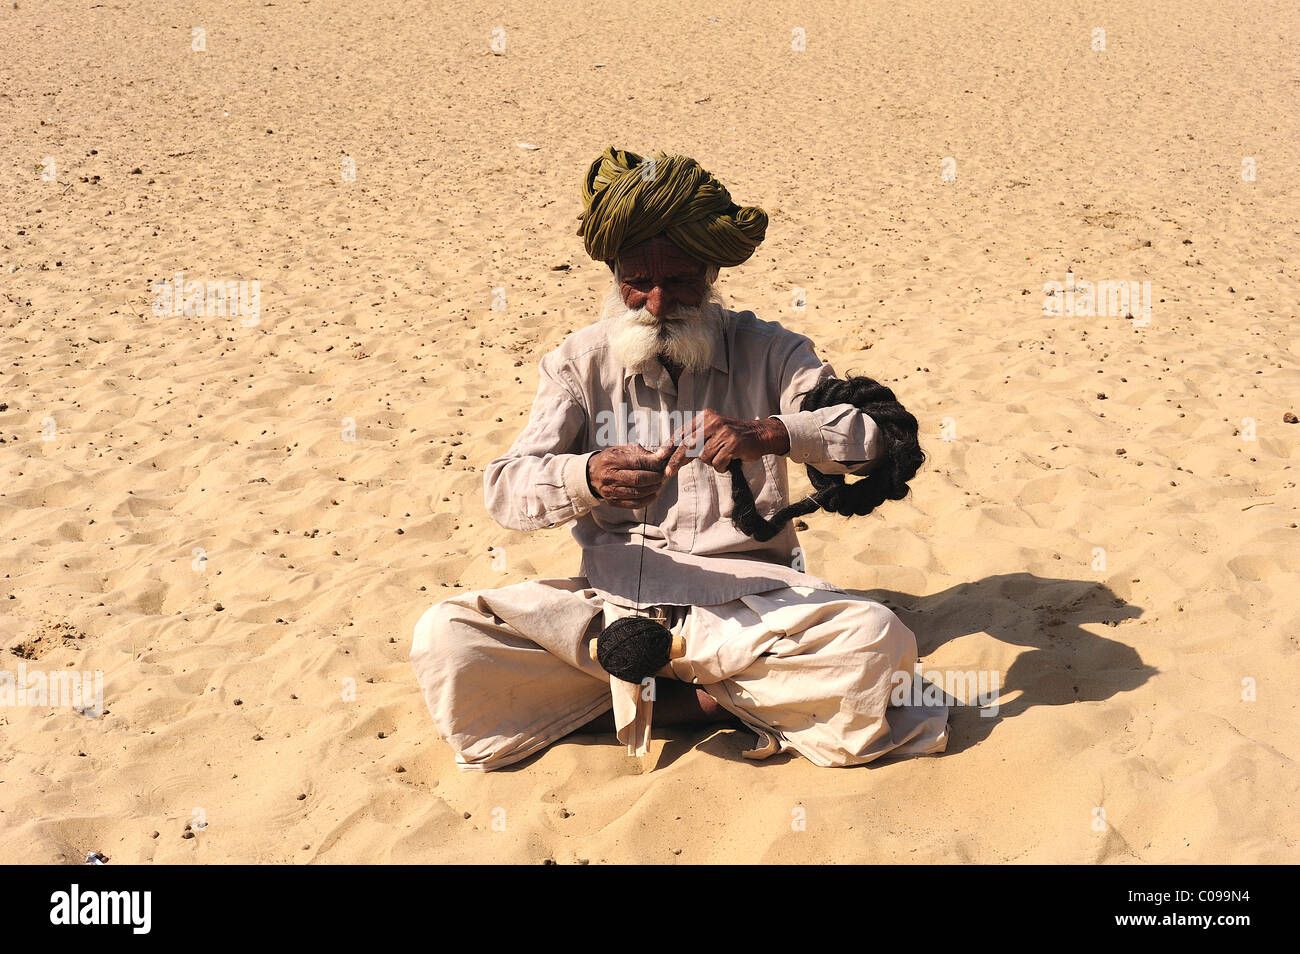 Old man spinning wool with a hand spindle, Thar Desert, Rajasthan, North India, India, Asia - Stock Image